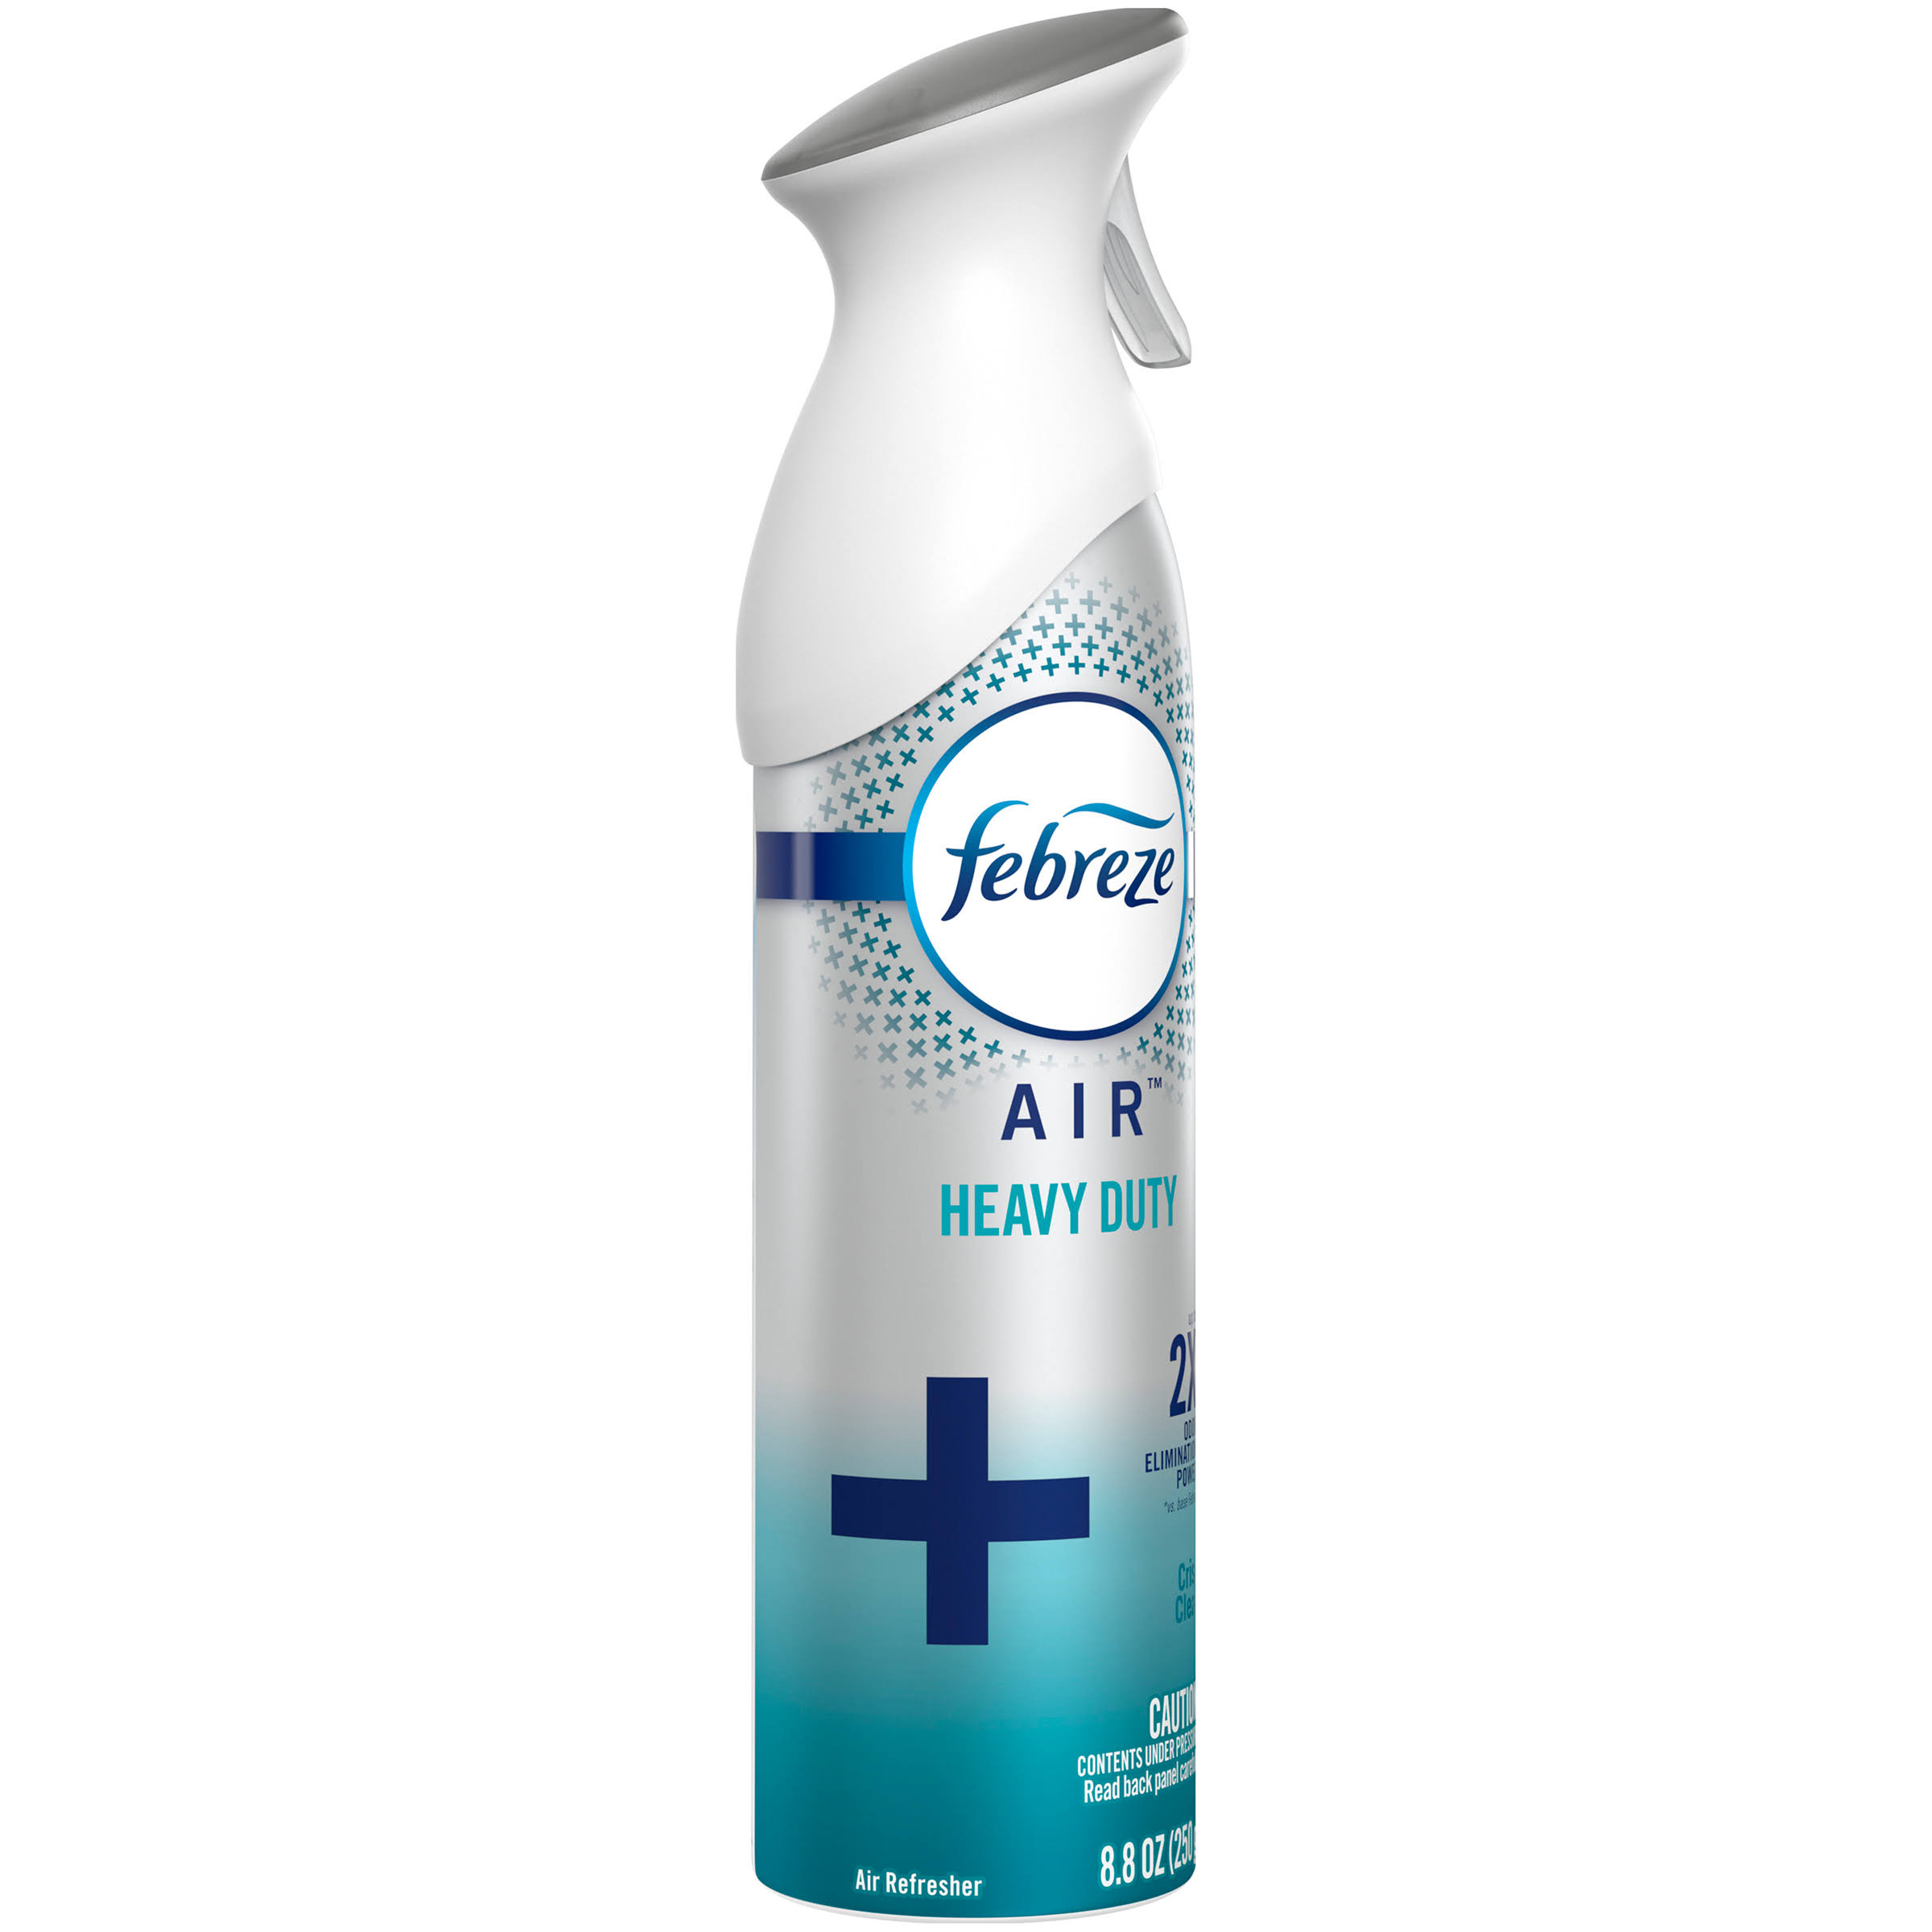 Febreze Clean Scent Heavy Duty Air Freshener Spray - 8.8 oz